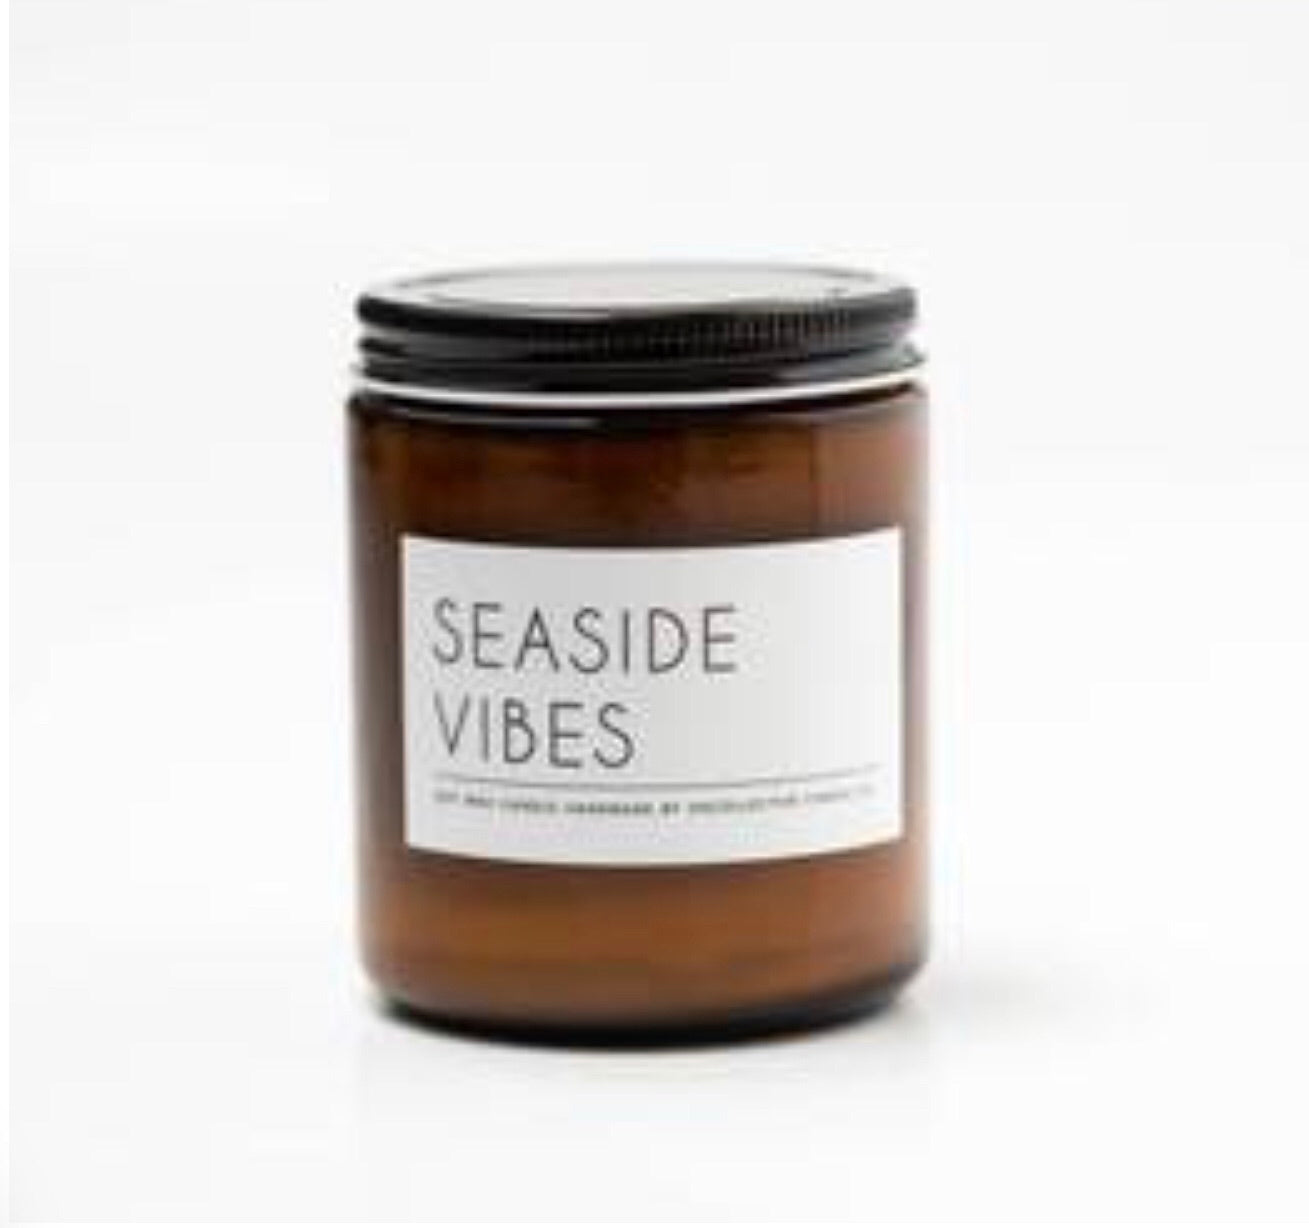 Seaside Vibes 8 oz Soy Candle